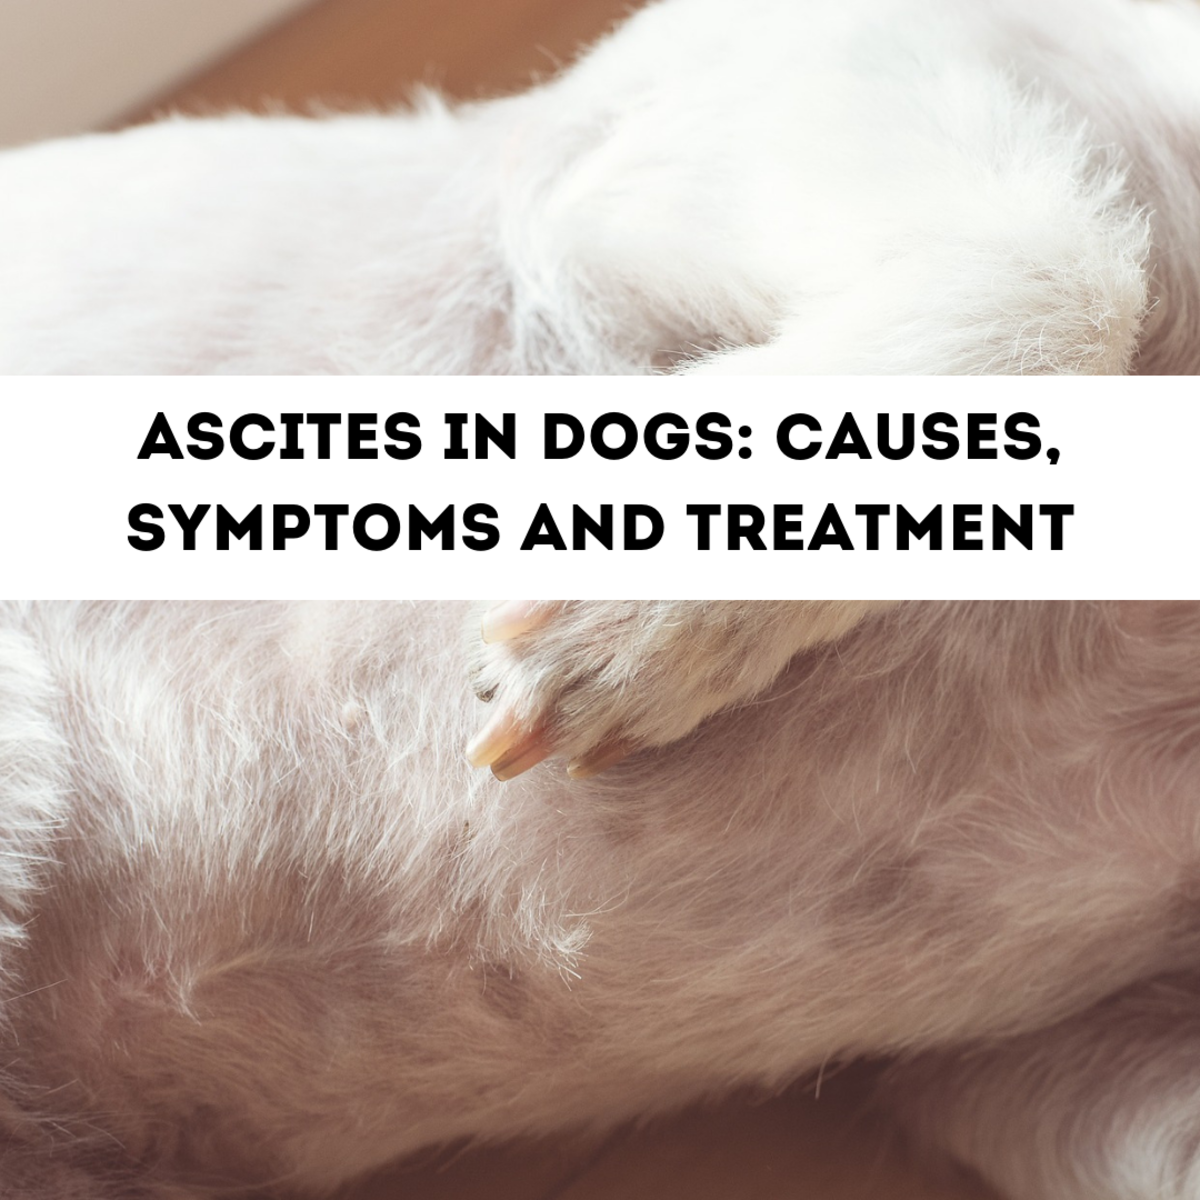 The Causes of Ascites (Fluid in the Abdomen) in Dogs